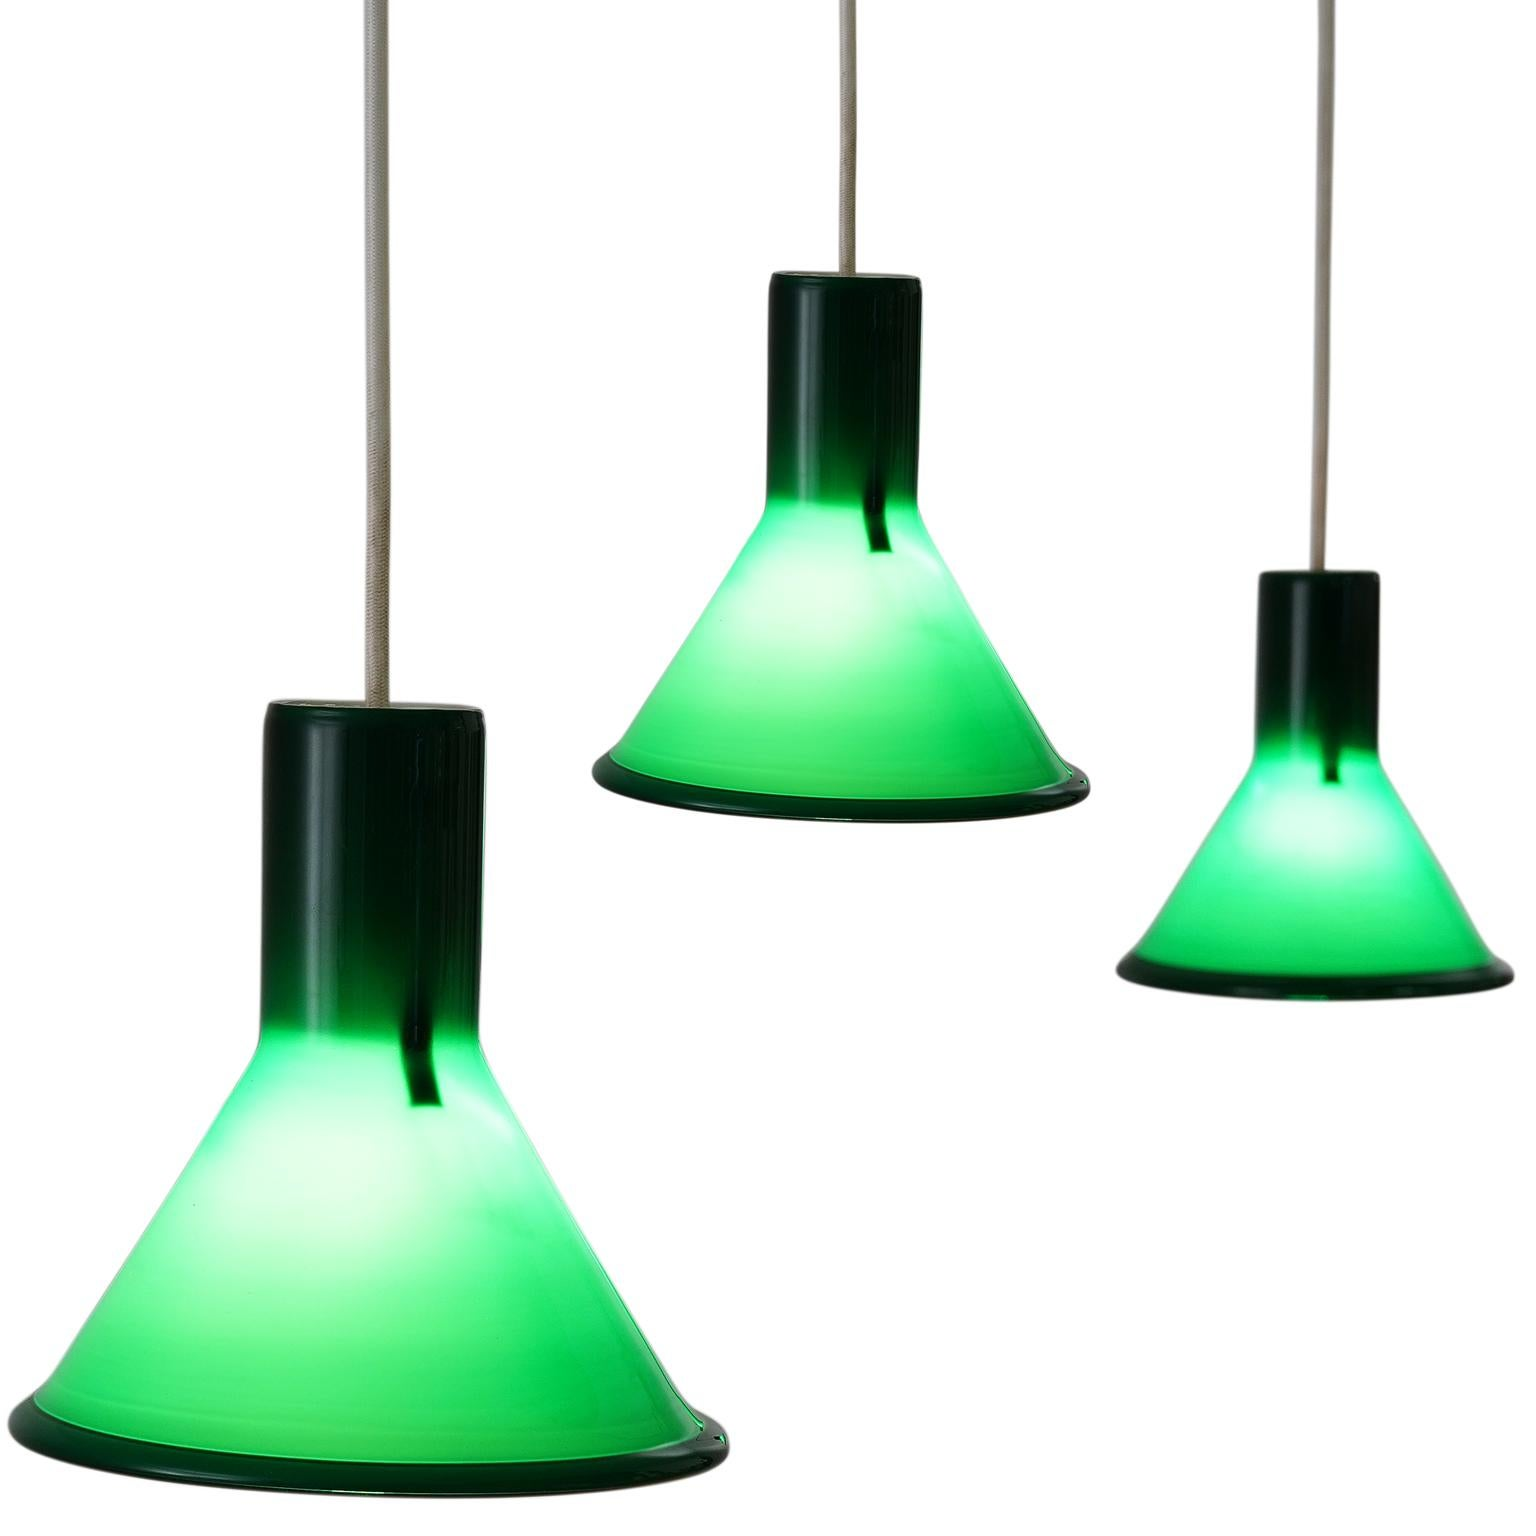 Green glass pendant lighting Lime Green Three Michael Bang For Holmegaard Green Pendants For Sale Bagetyinfo Three Michael Bang For Holmegaard Green Pendants For Sale At 1stdibs